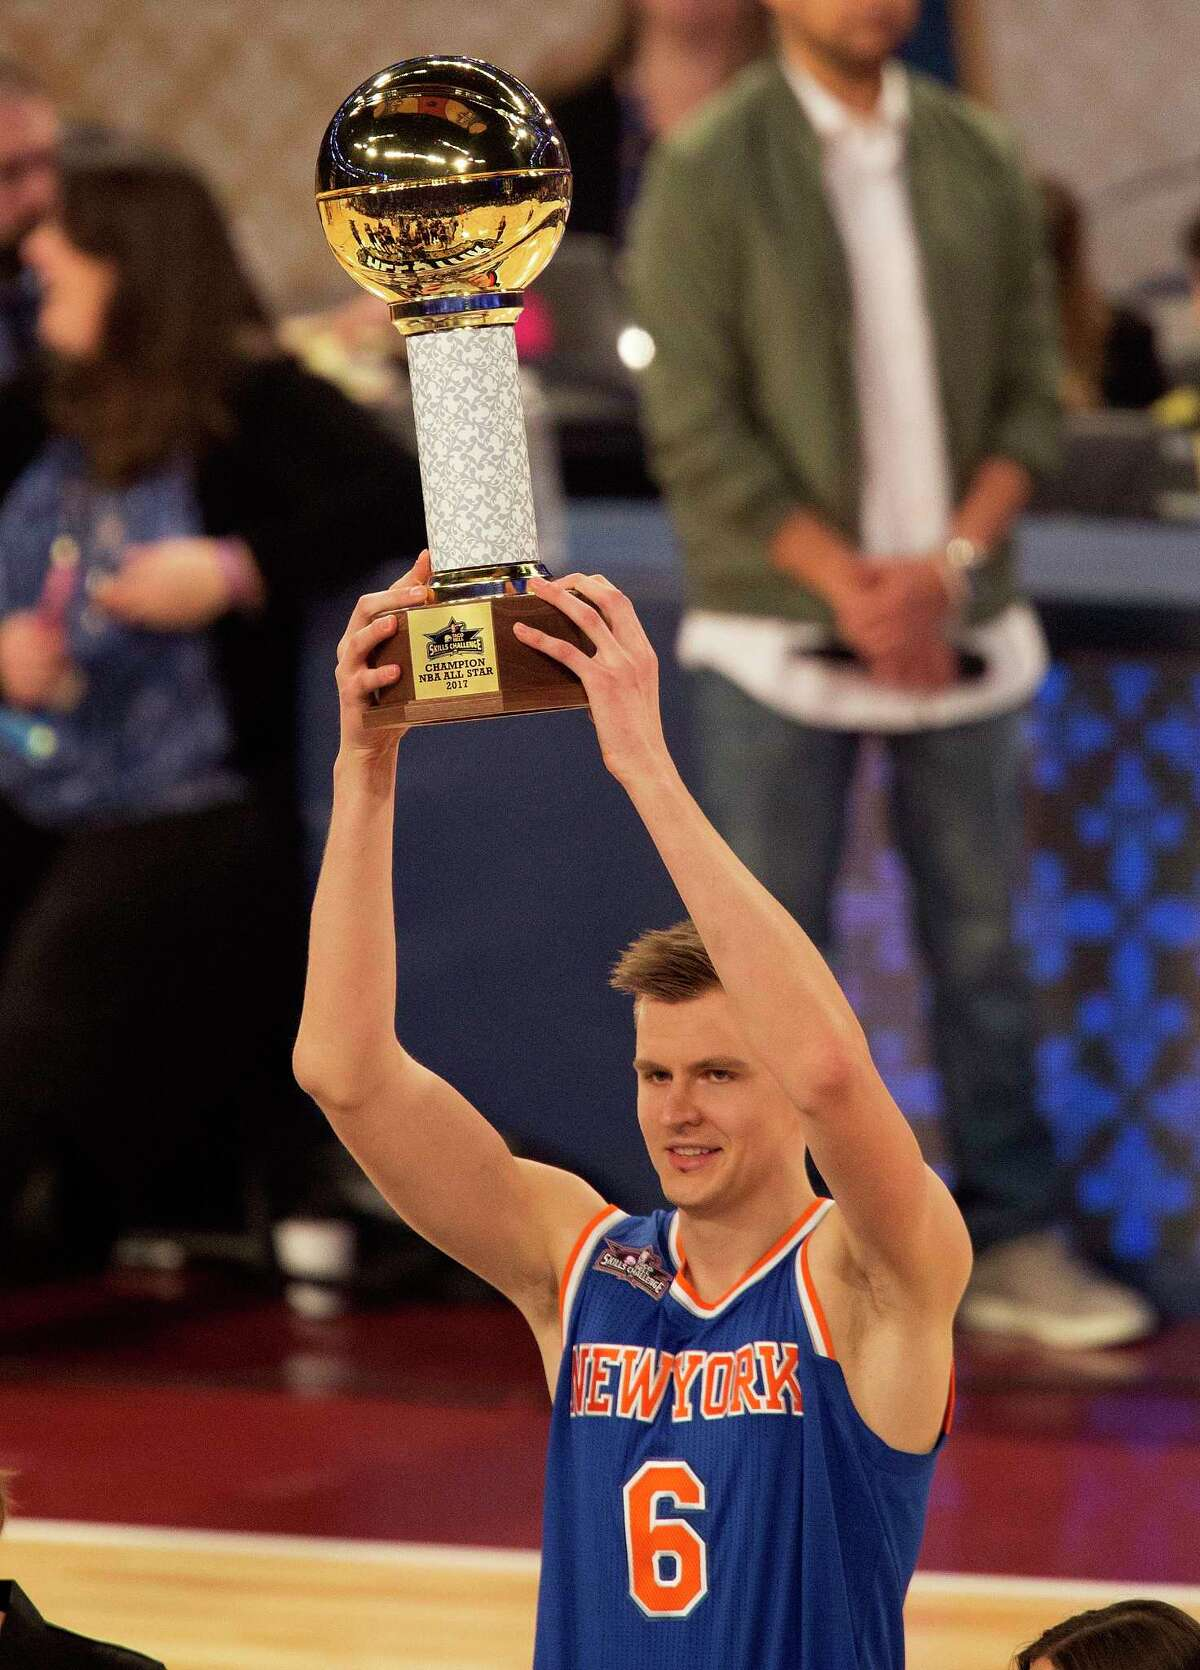 New York Knicks forward Kristaps Porzingis raises the trophy after winning the NBA Skills Challenge during the NBA All-Star Saturday Night events in New Orleans, Saturday, Feb. 18, 2017. (AP Photo/Max Becherer) ORG XMIT: LAMB107